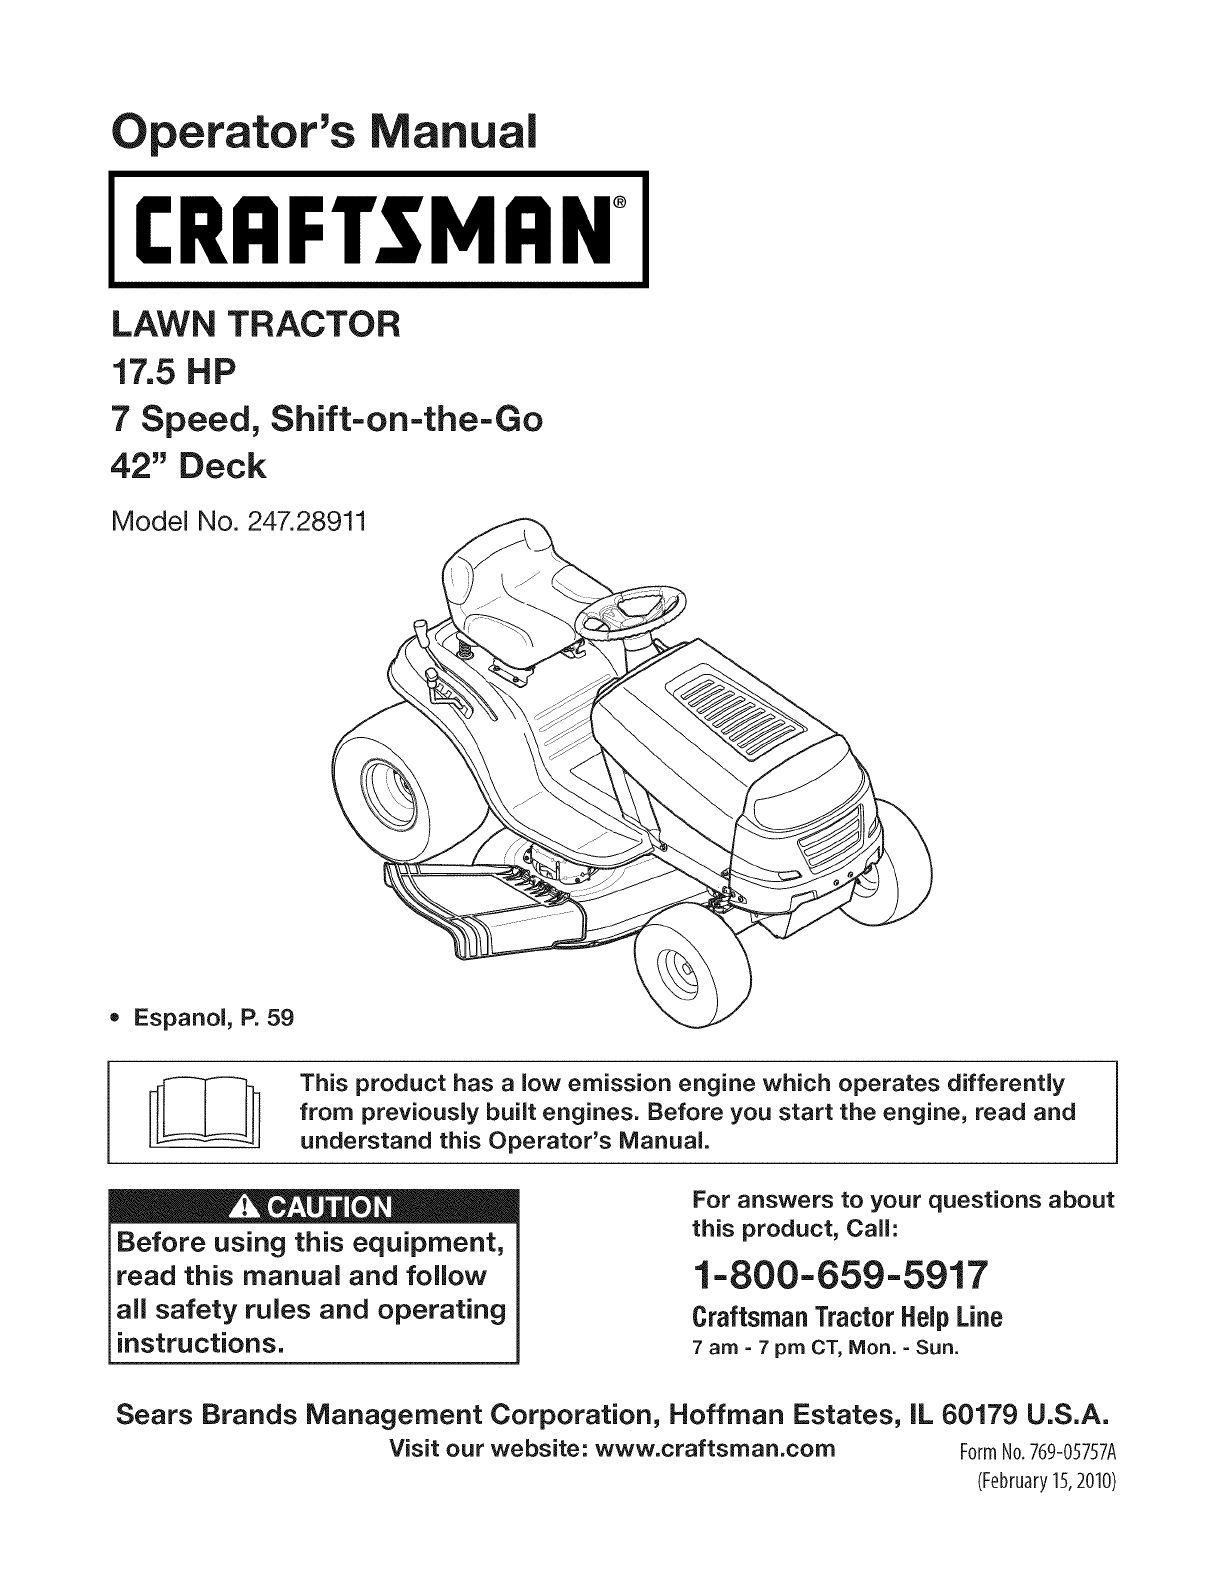 8e7b3384 e1d3 48fe bee0 c4dbc25d375e bg1 craftsman lawn mower 28911 user guide manualsonline com craftsman lt1000 wiring diagram at gsmx.co